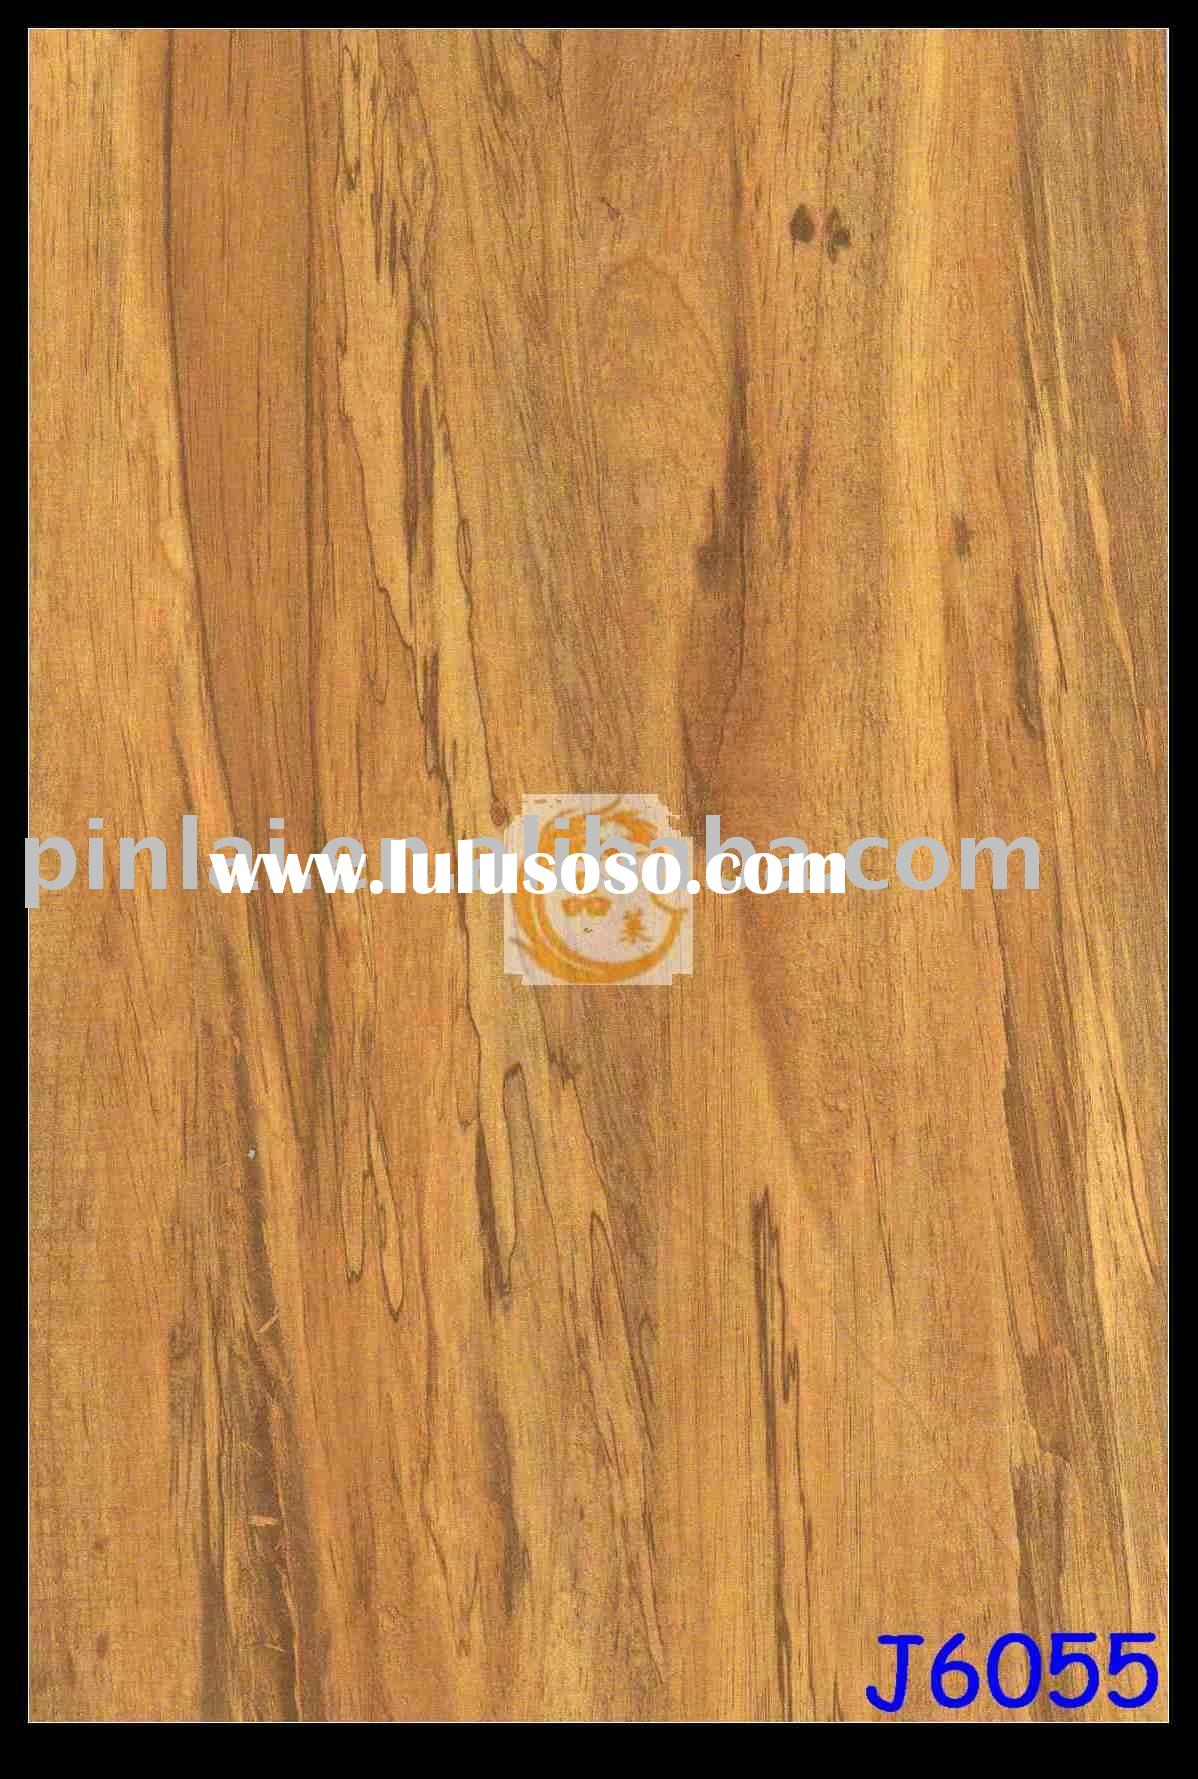 Wood Grain Laminate ~ Wood grain decorative paper for laminate flooring